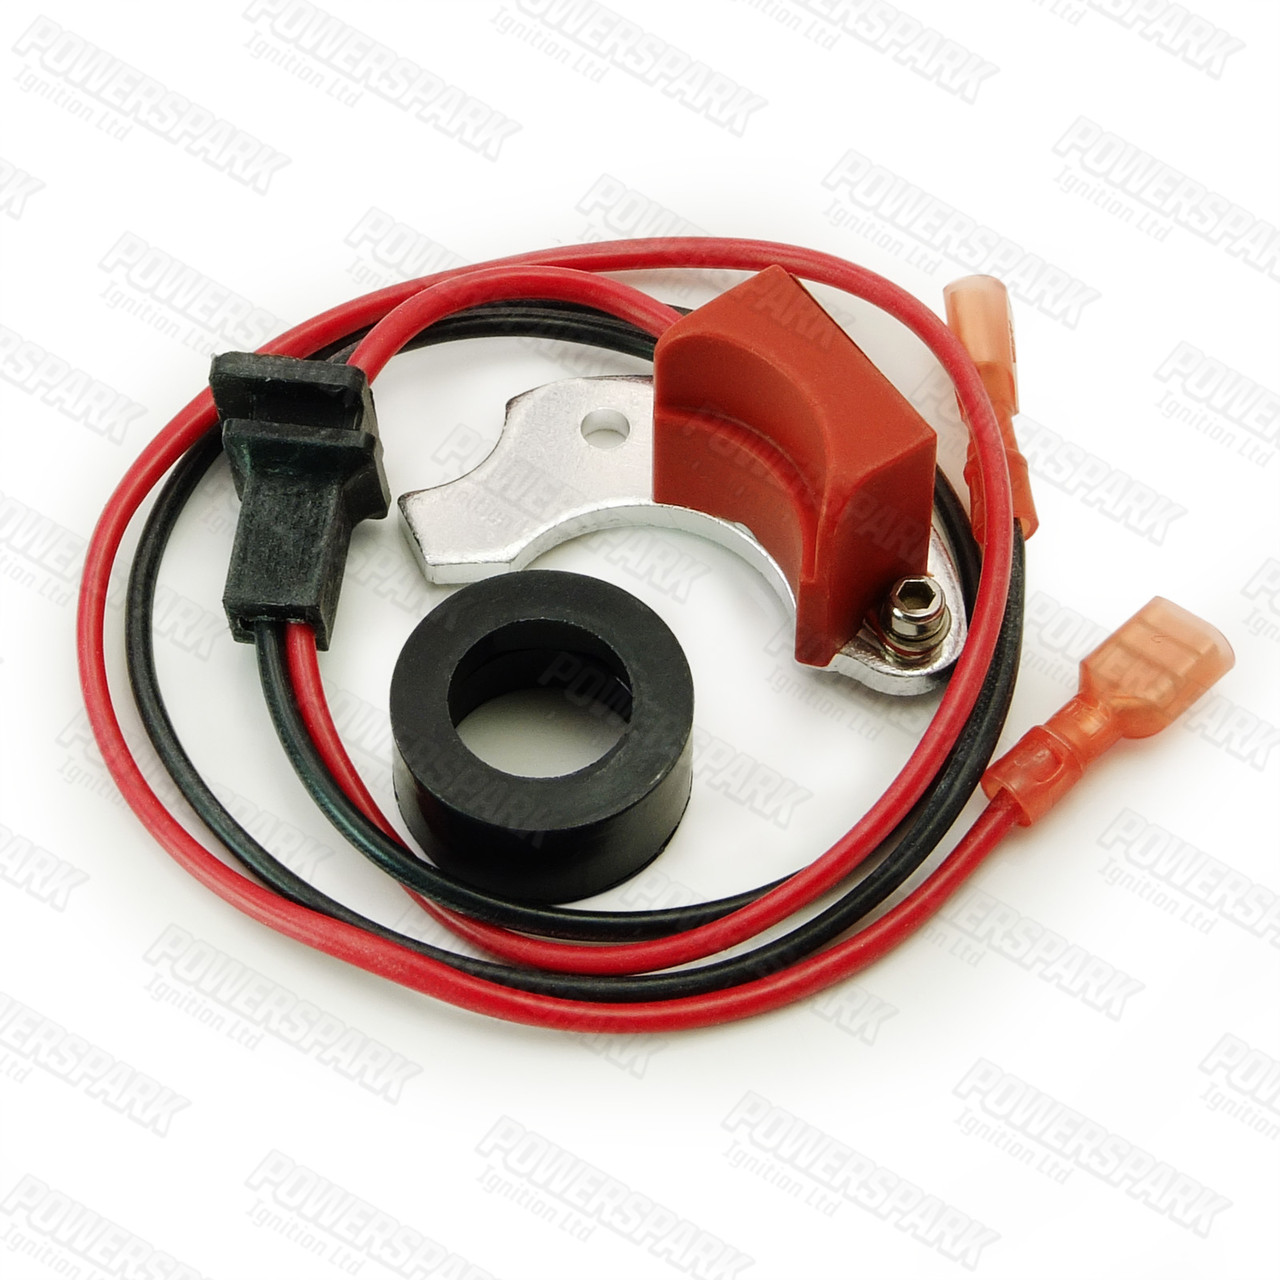 Powerspark Electronic Ignition Kit for Lucas DX6A Distributor (K36)